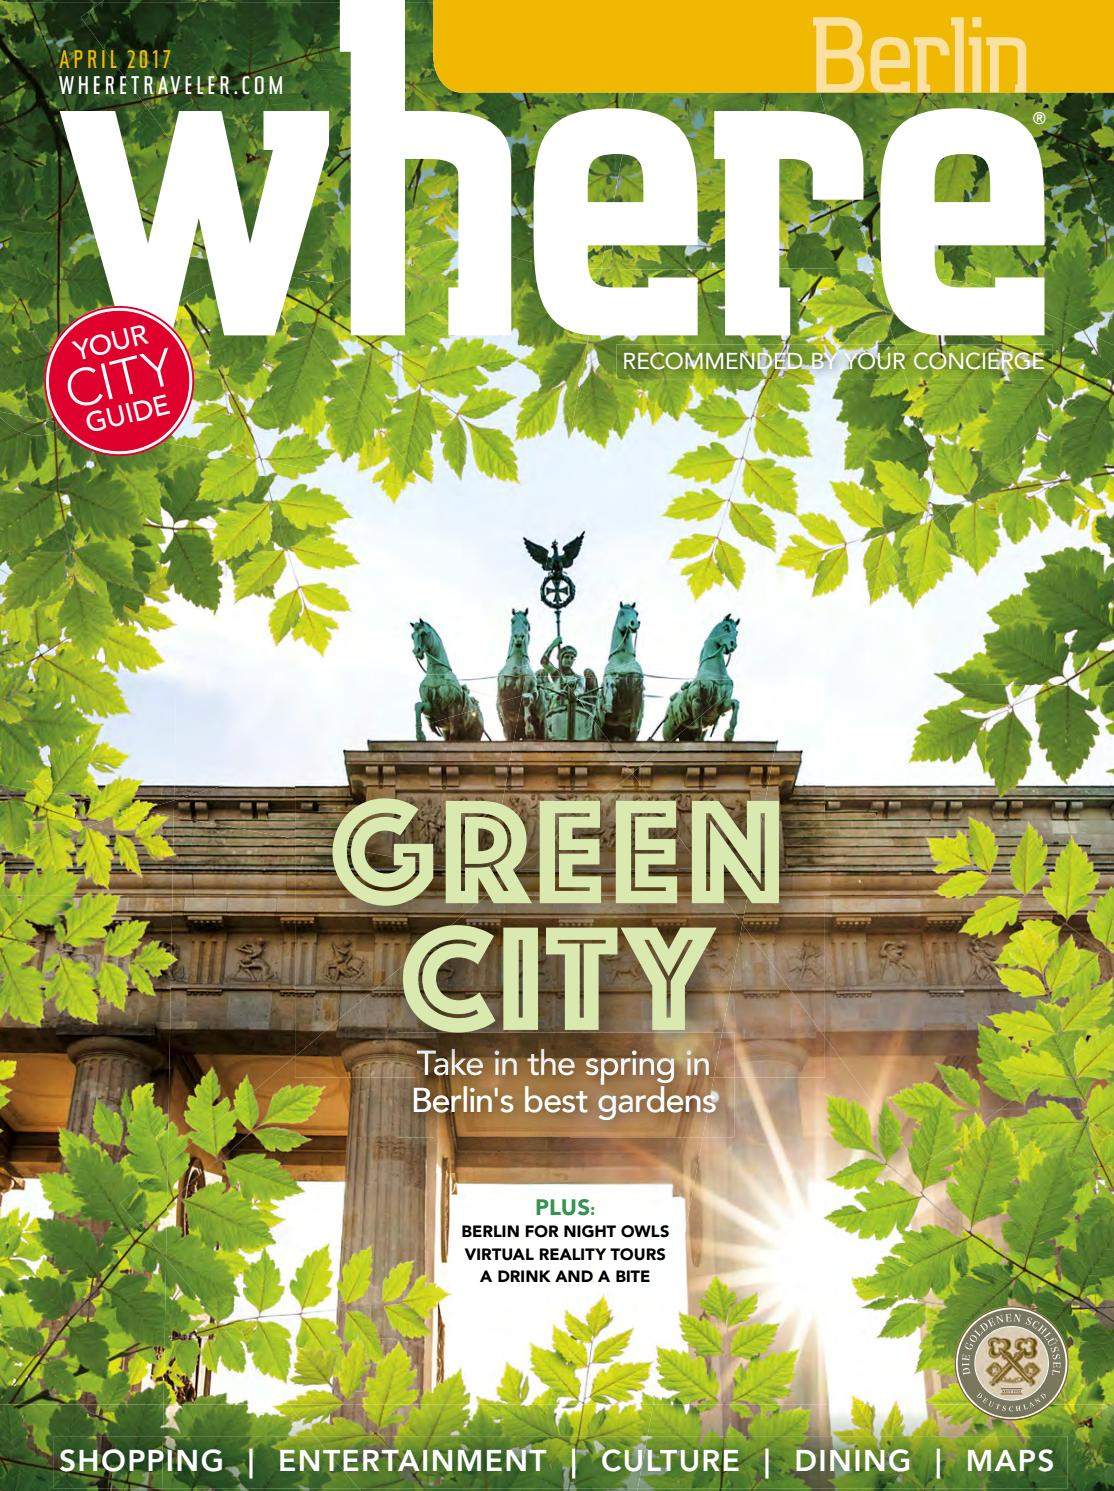 Botanischer Garten Rostock Best Of where Berlin April 2017 by Morris Media Network issuu